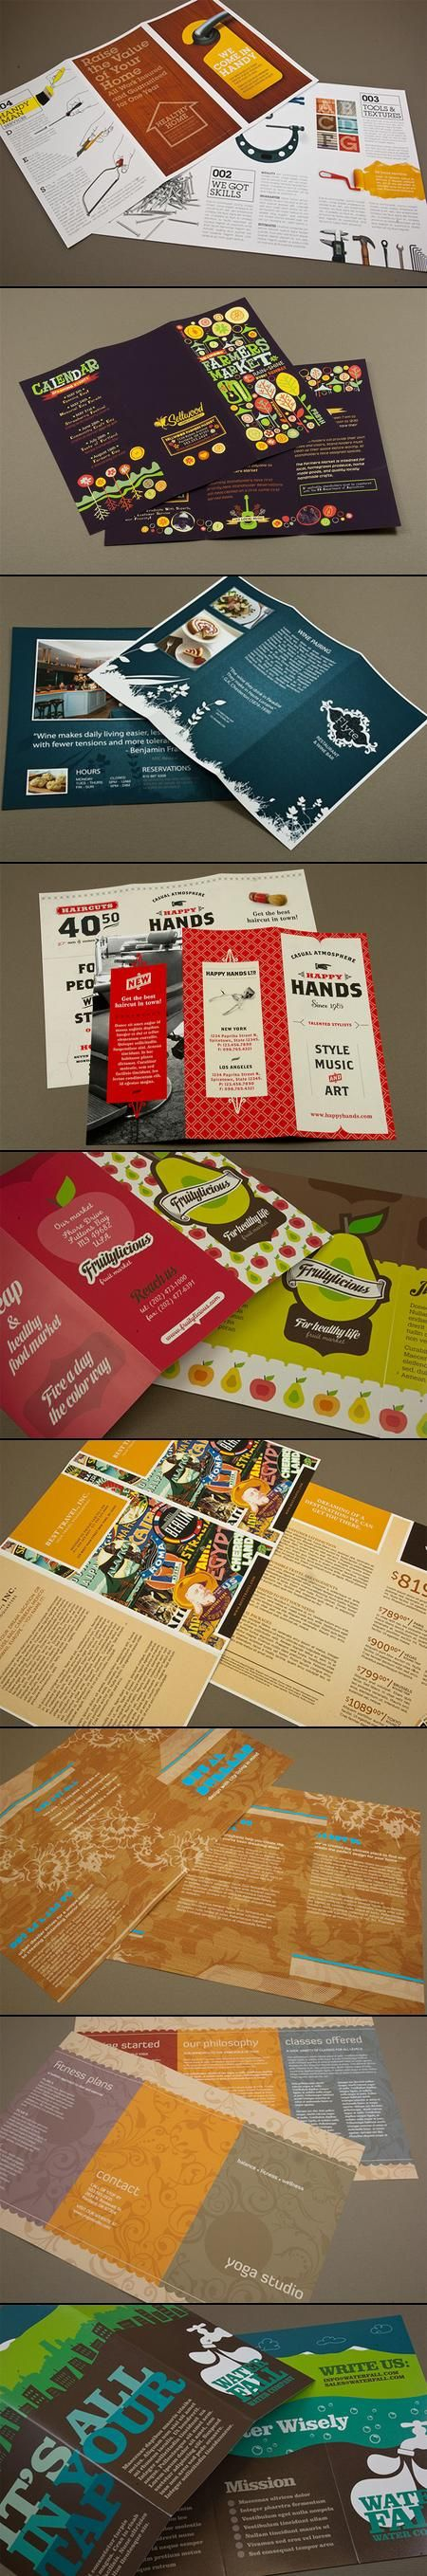 30+ Well-designed Tri-fold Brochures